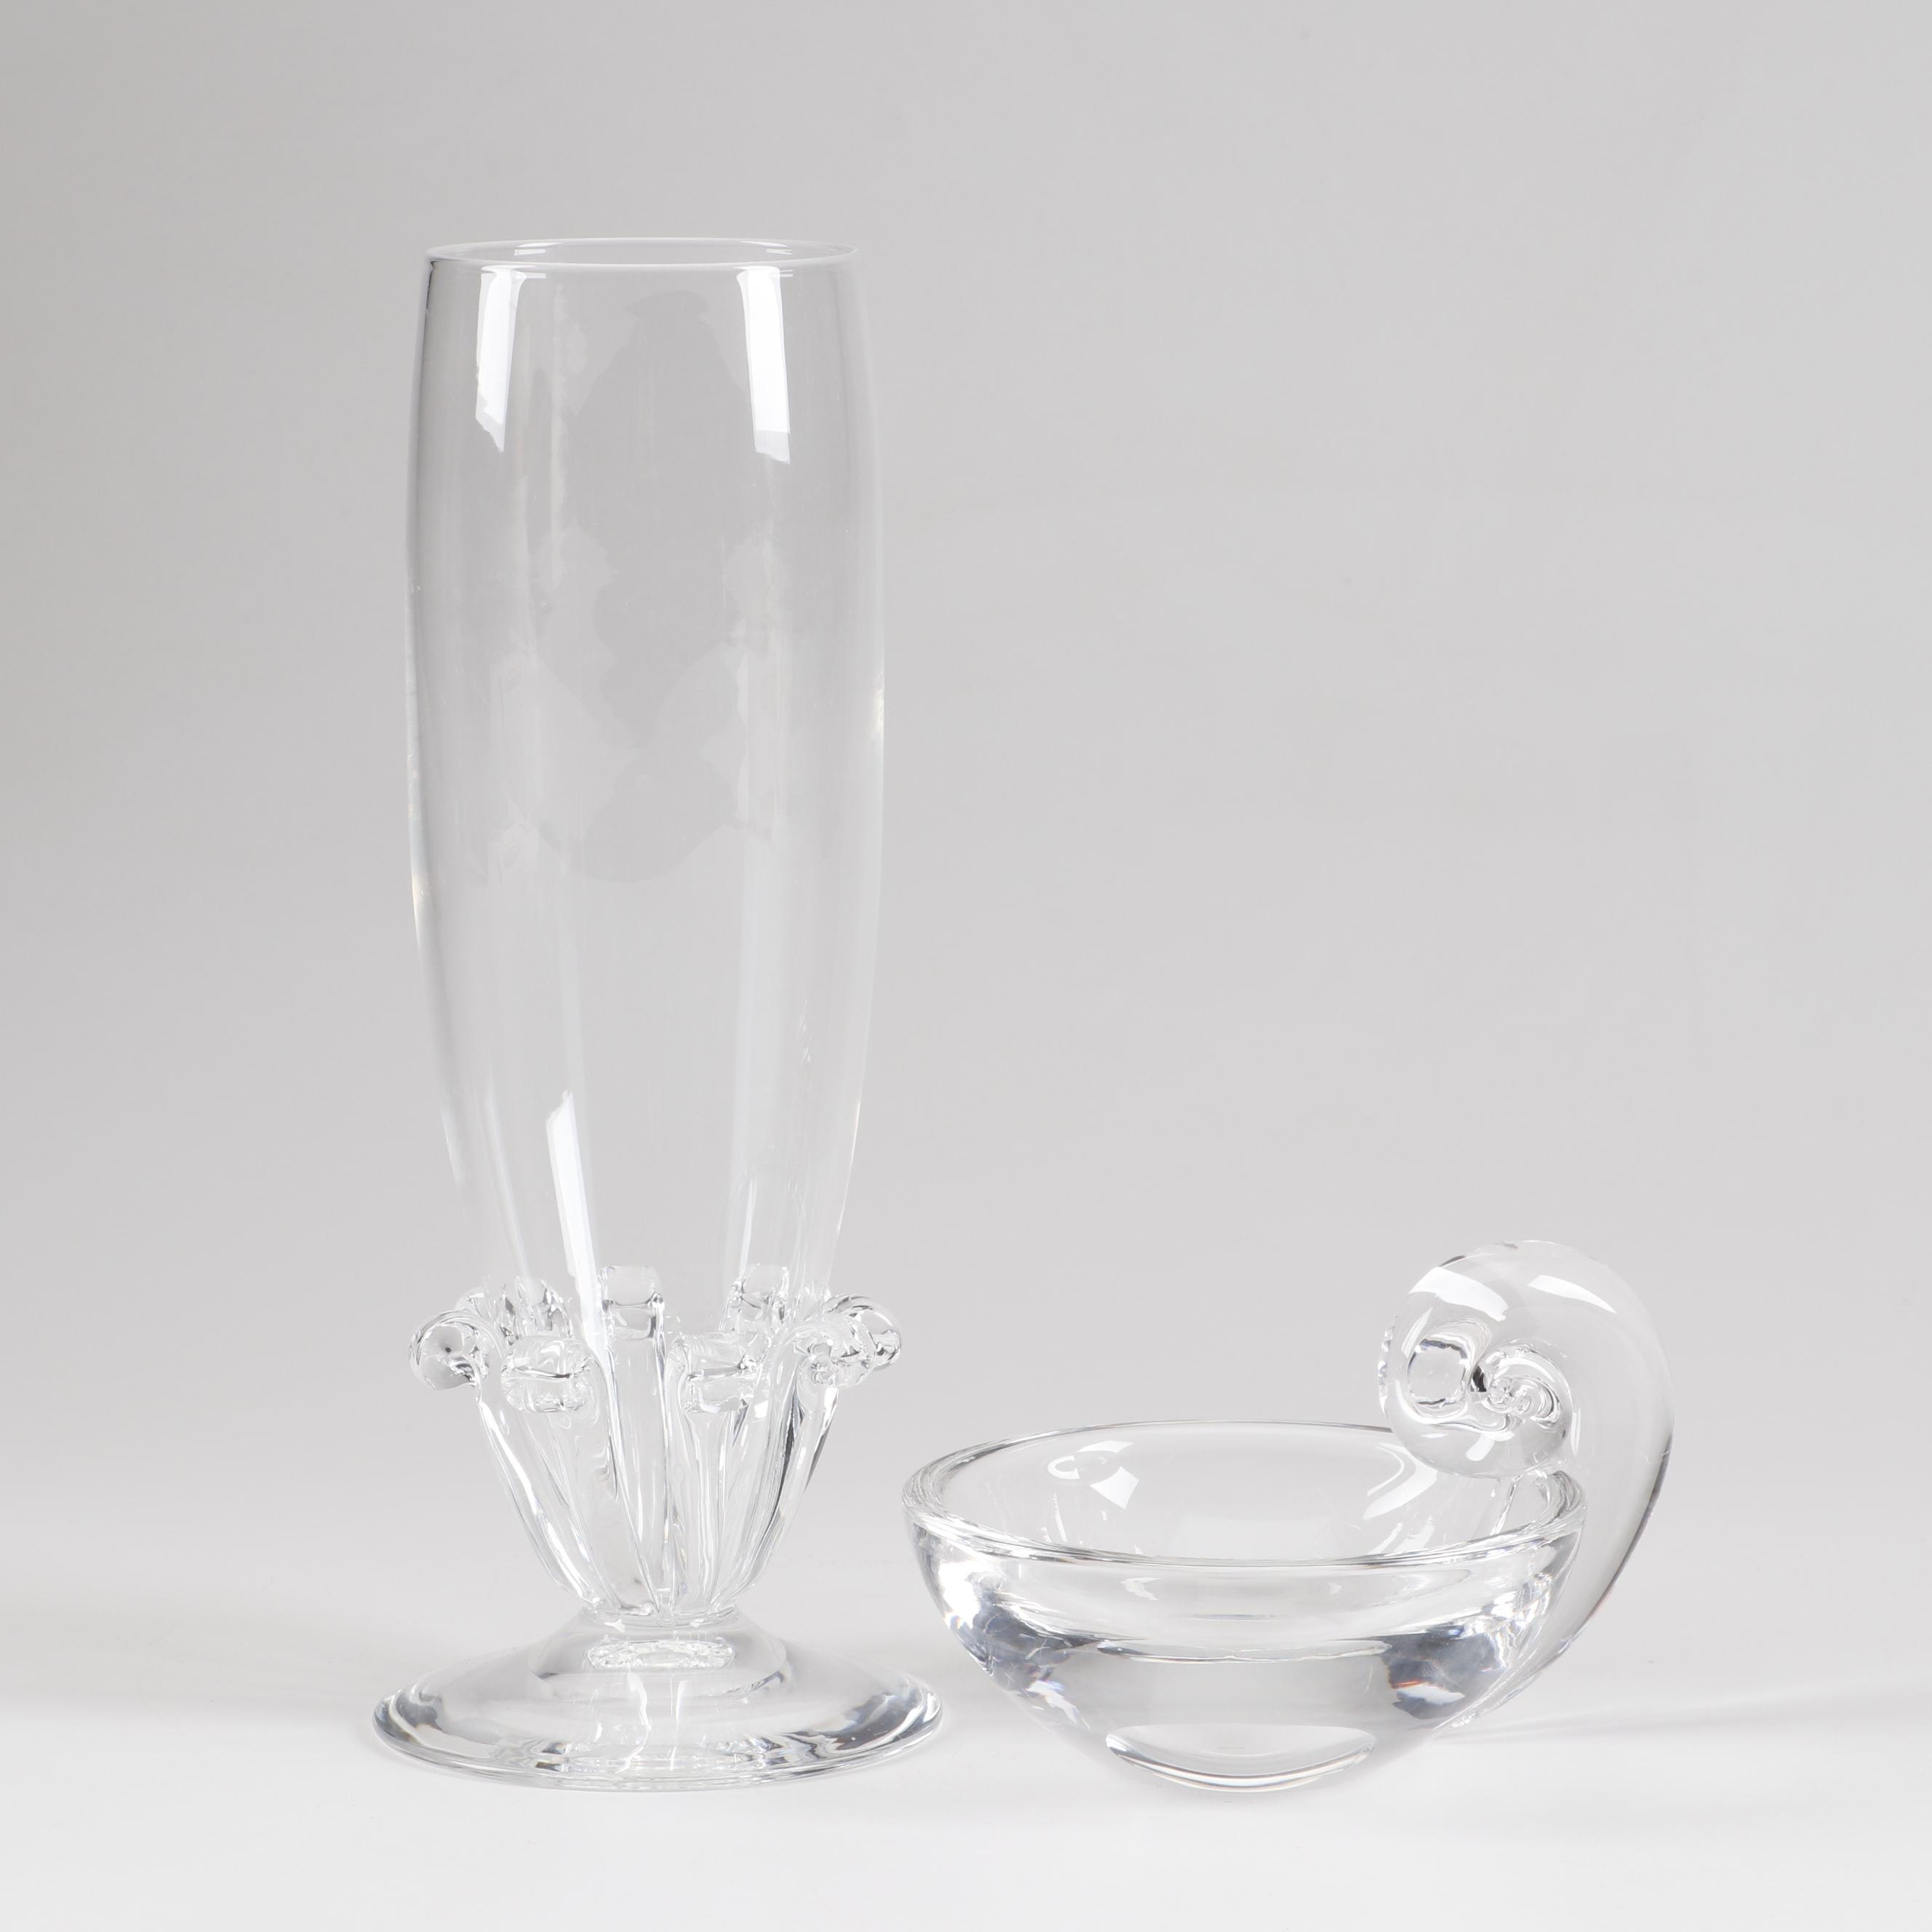 Steuben Crystal Pedestal Vase and Snail Handle Candy Dish